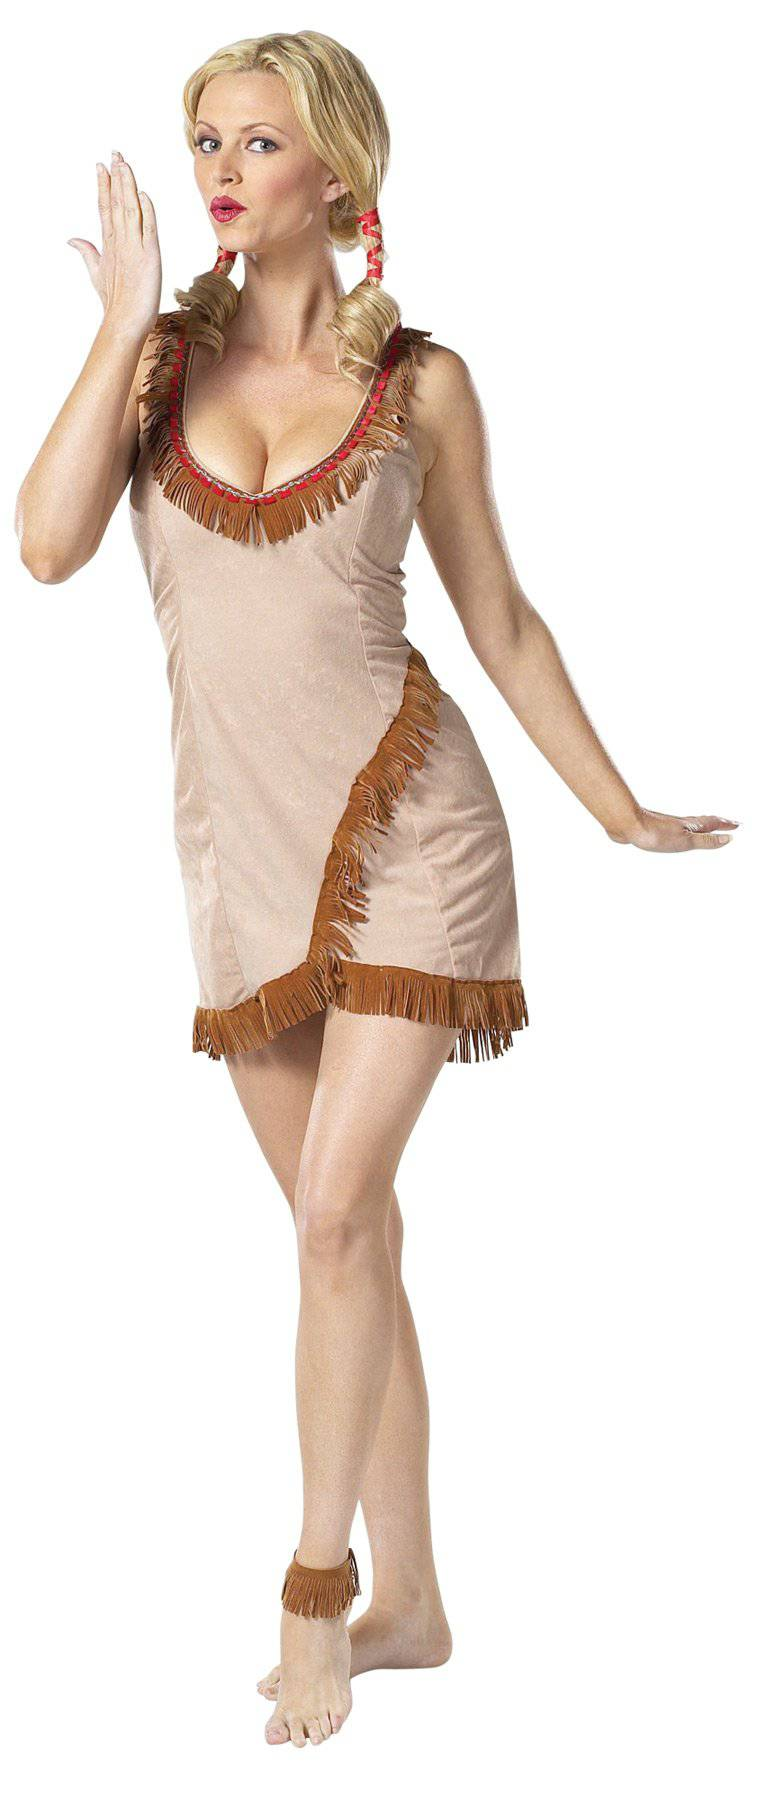 Cinema Secrets Women's Sexy Tribal Tease Adult Costume - Costume Arena